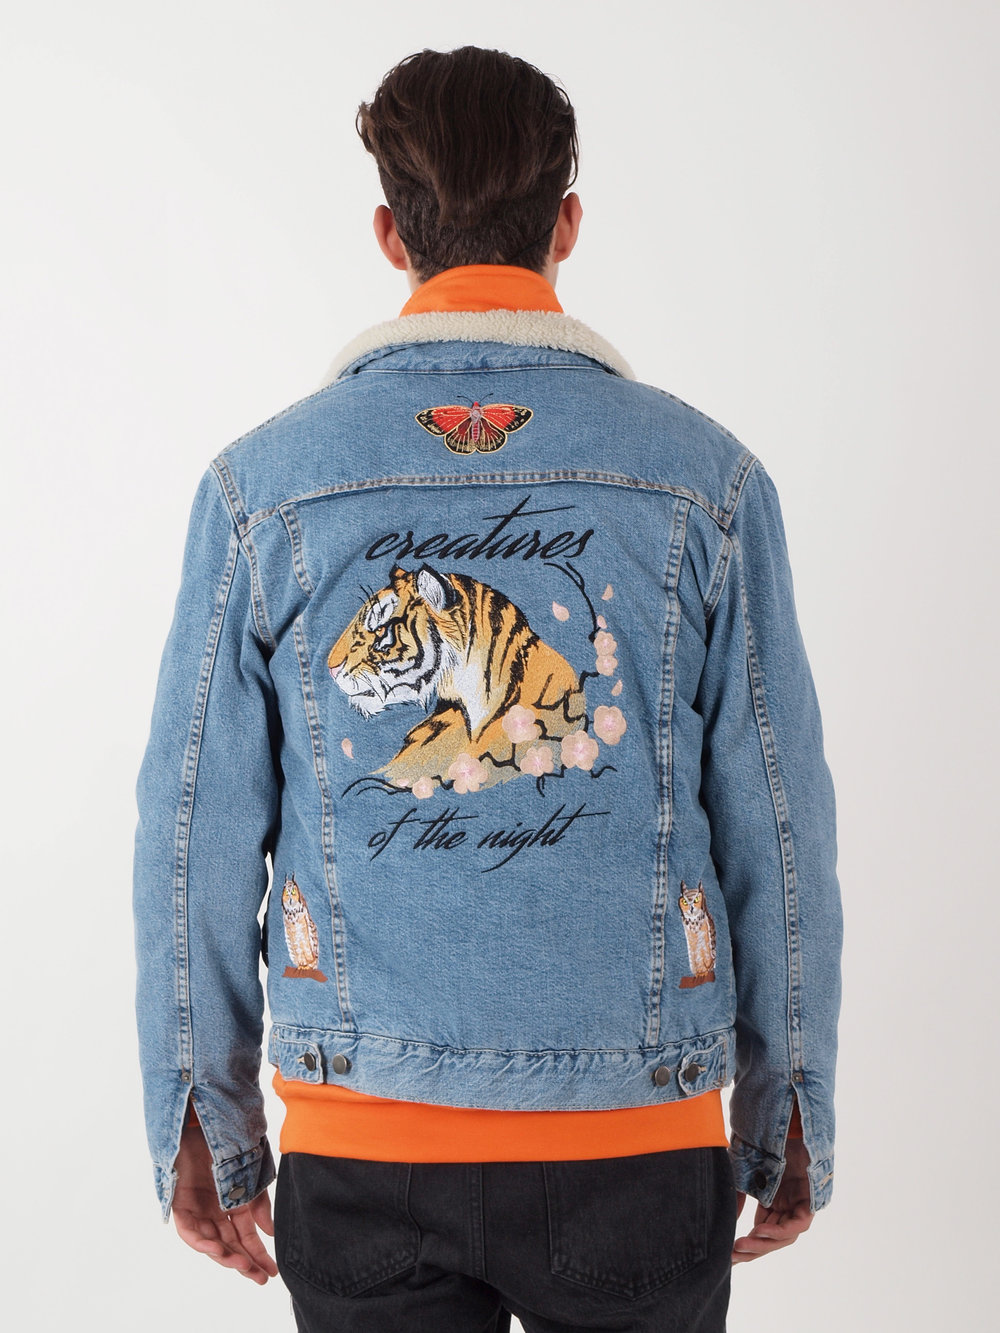 shearling denim jacket back.jpg